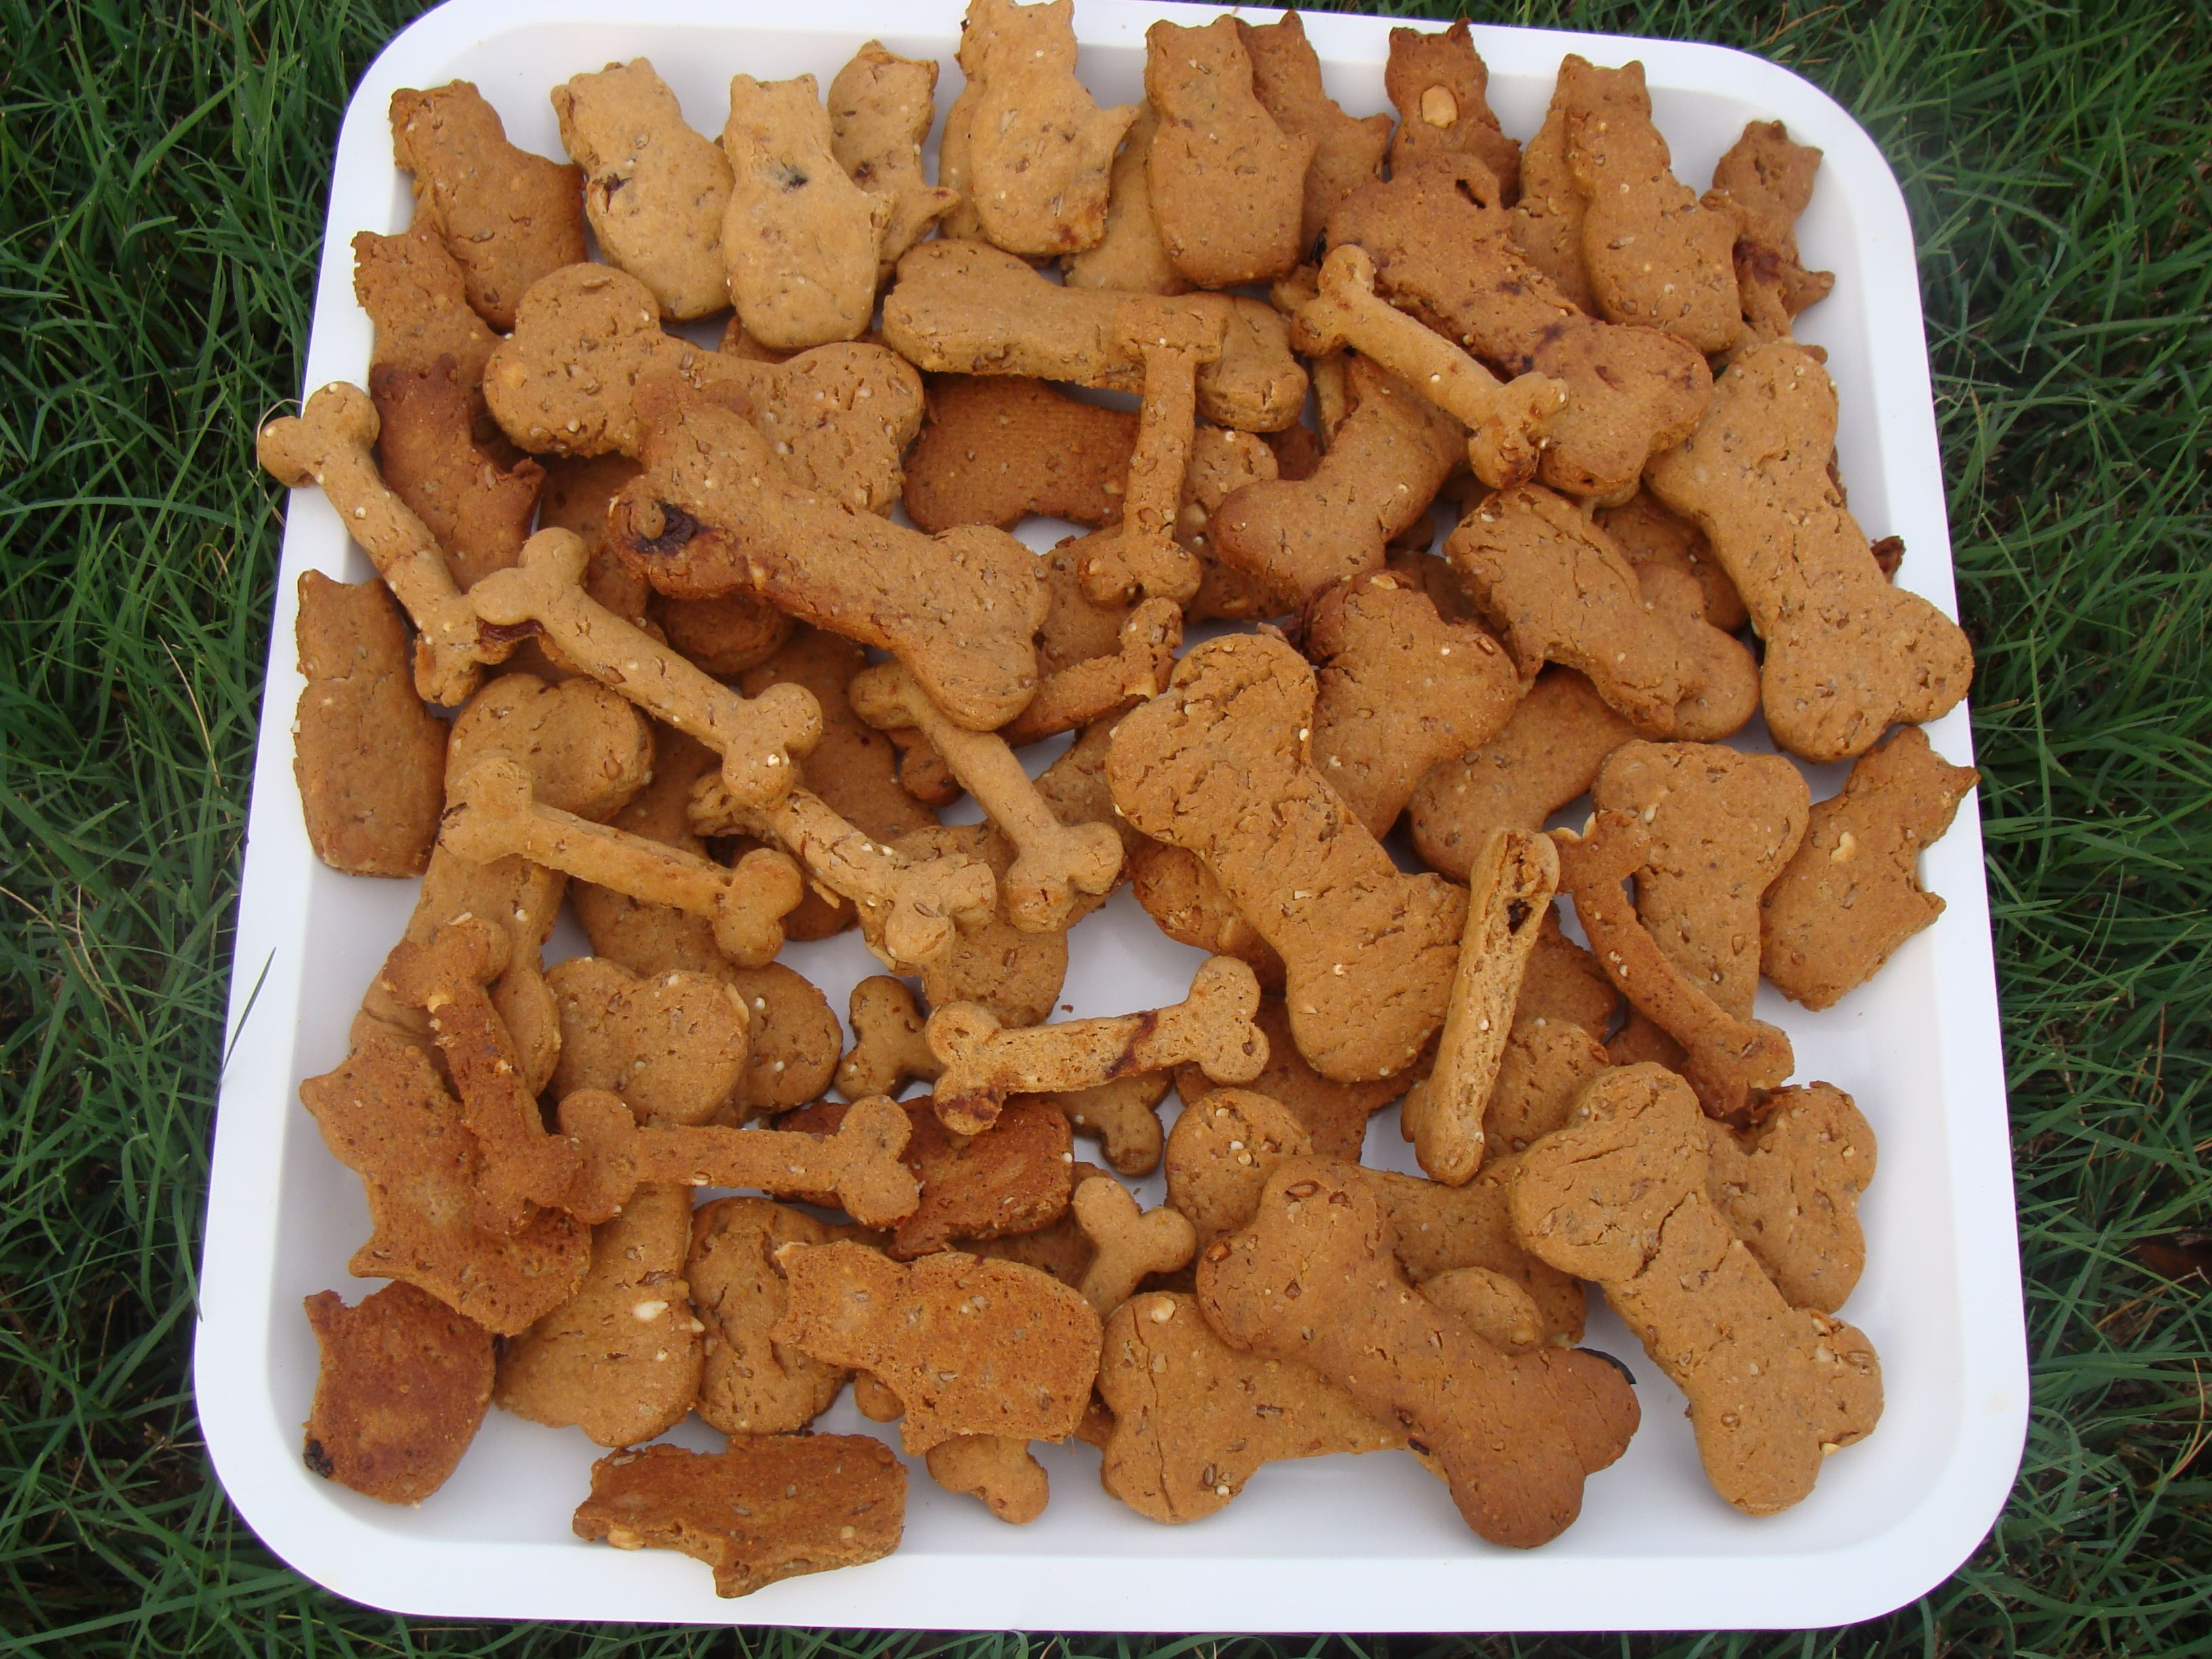 Peanut Butter and Bacon Doggy Treats - made from wild-harvested yeast.